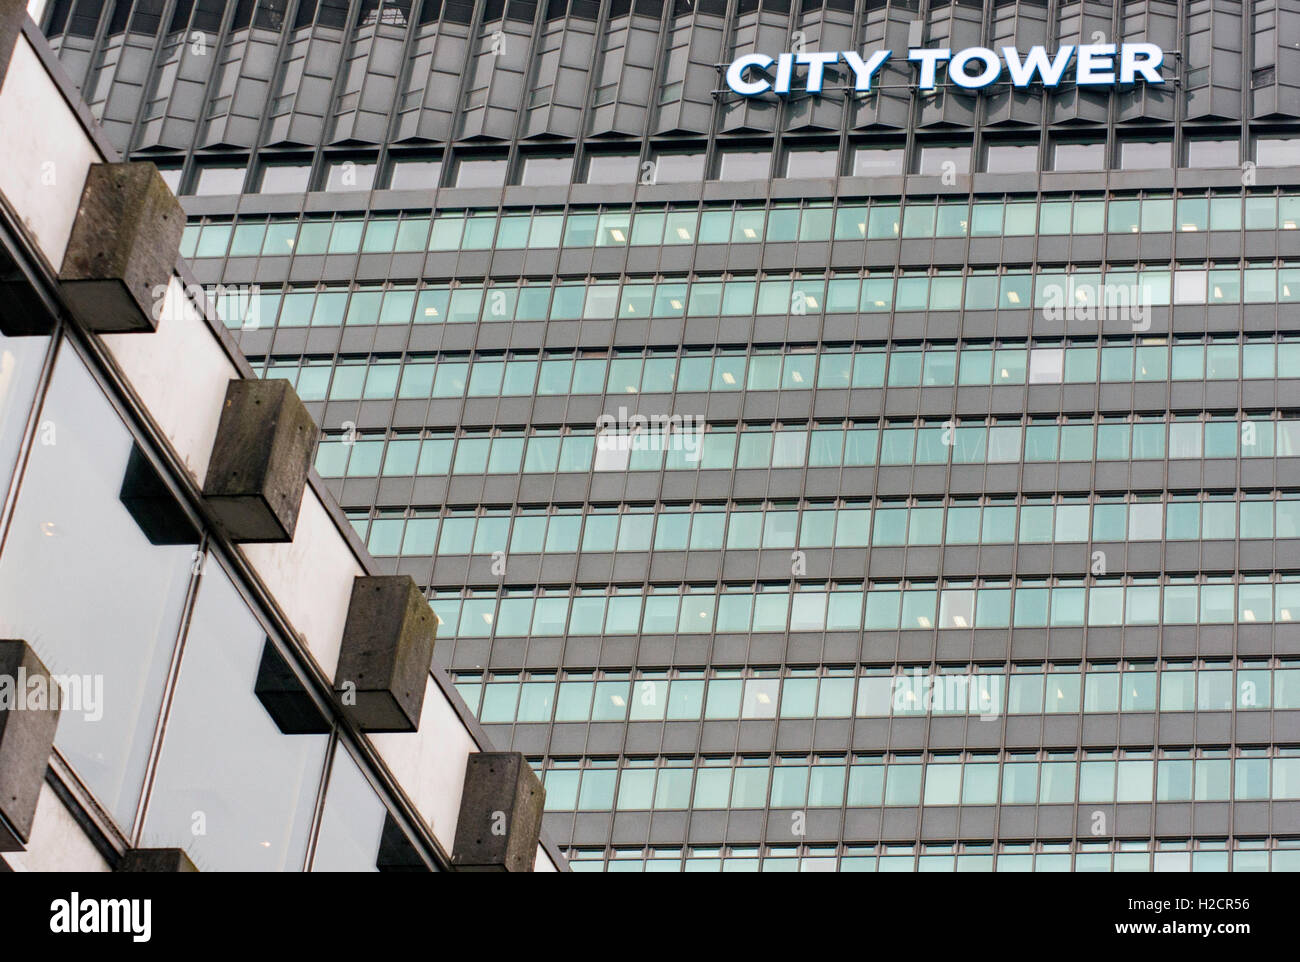 City Tower, Piccadilly Gardens Manchester - Stock Image